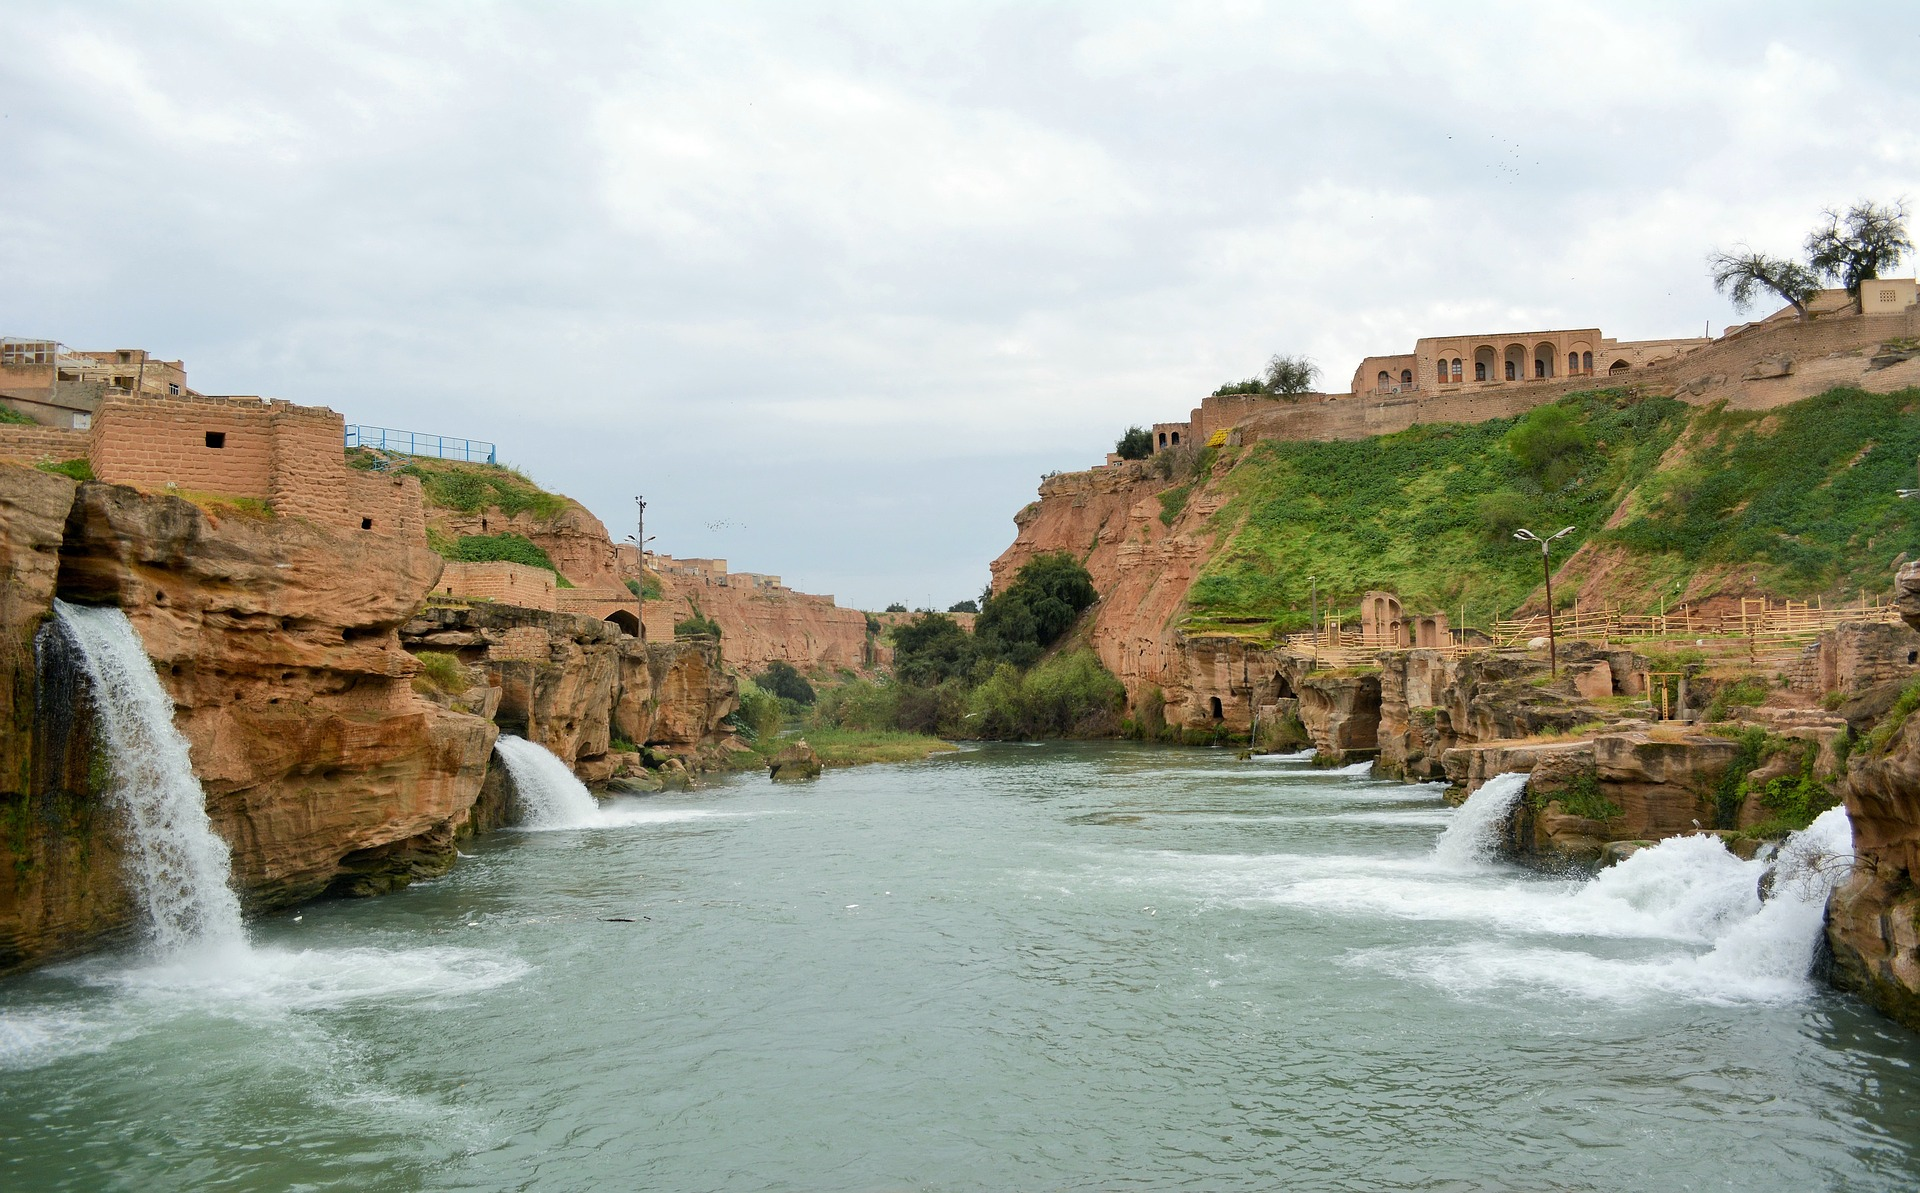 Waterfalls in Khuzestan Iran